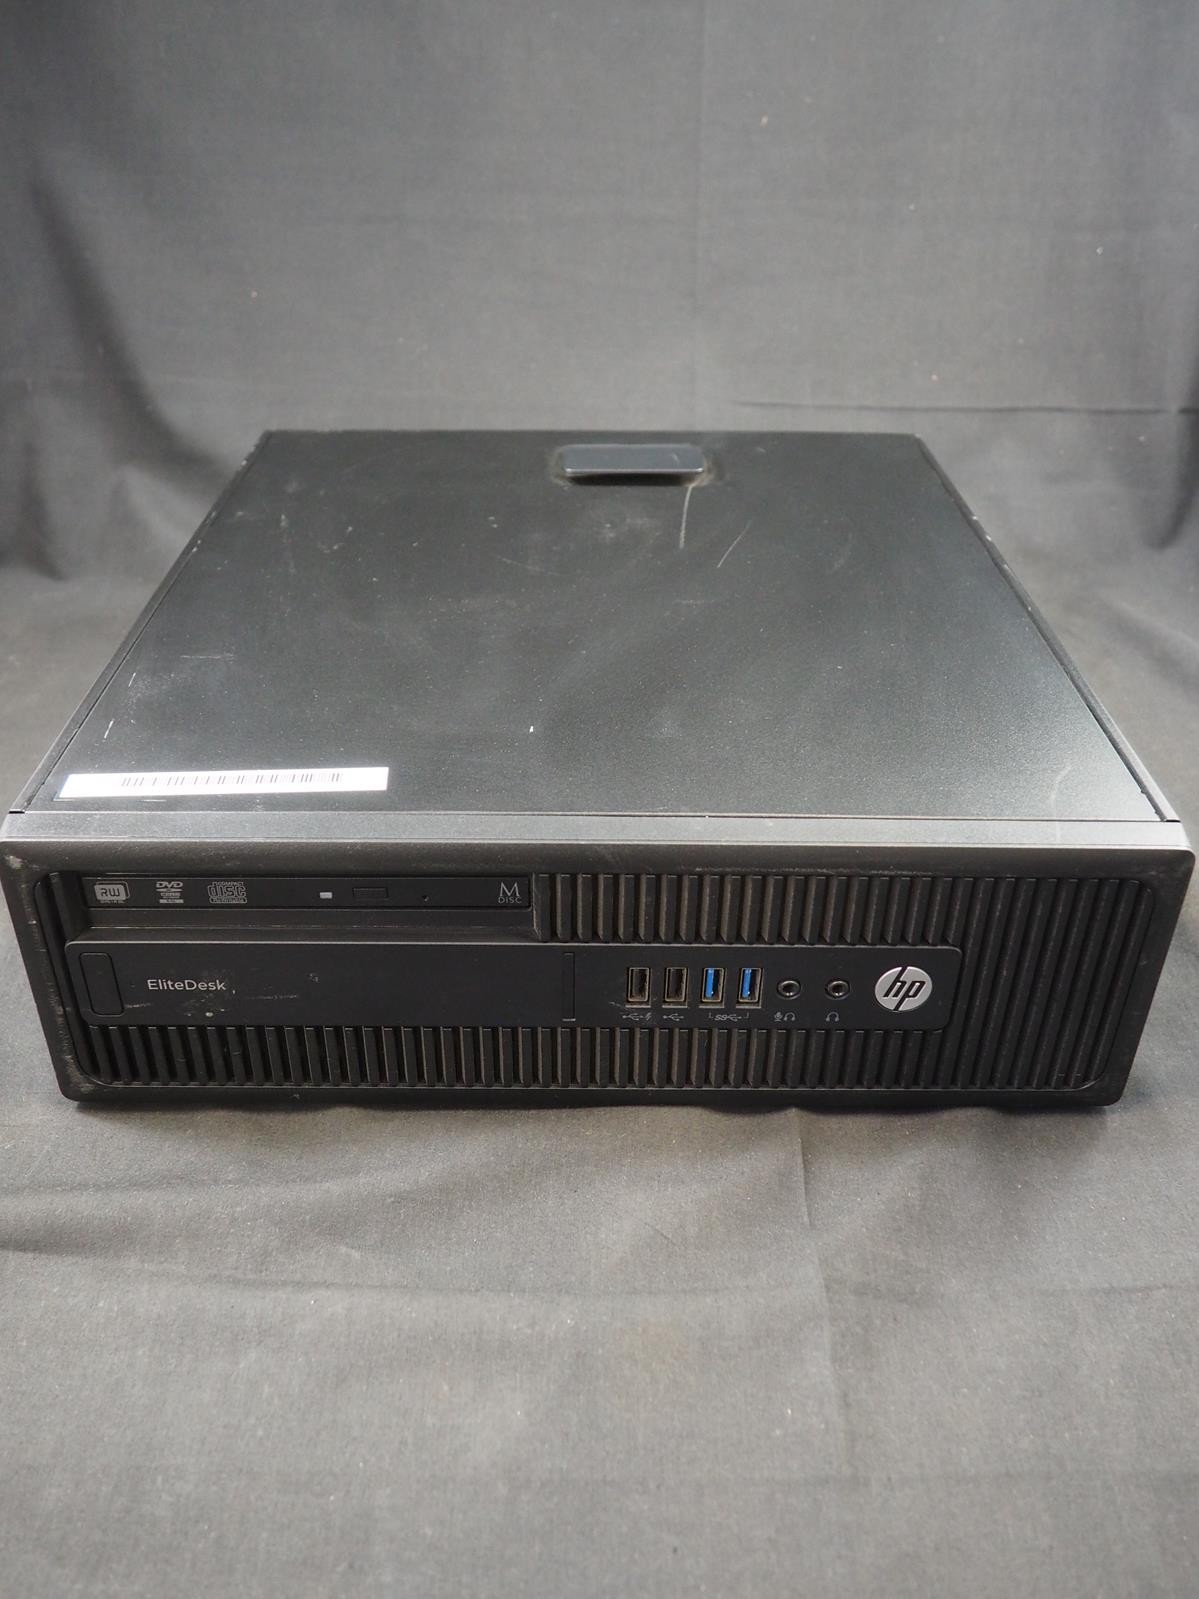 155-ELITEDESK_705_G2_SFF_10003_base